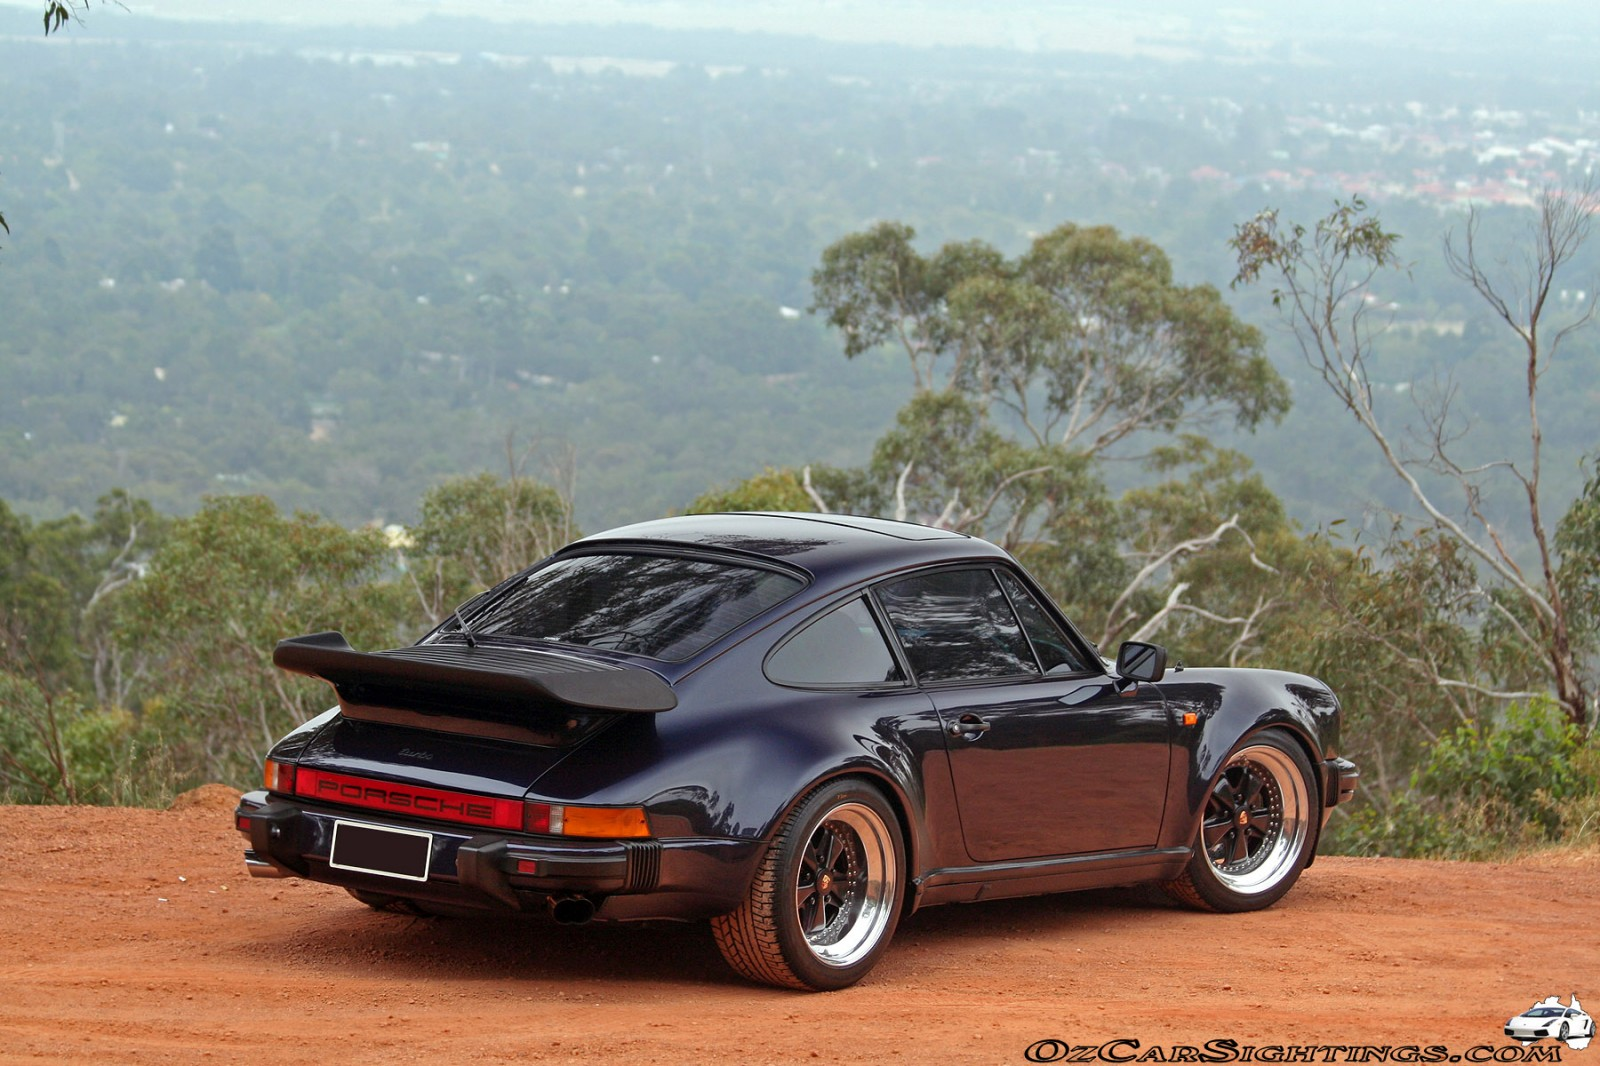 1984 Porsche 930 Turbo http://www.pixelcarart.com/lofiversion/index.php?t43437.html